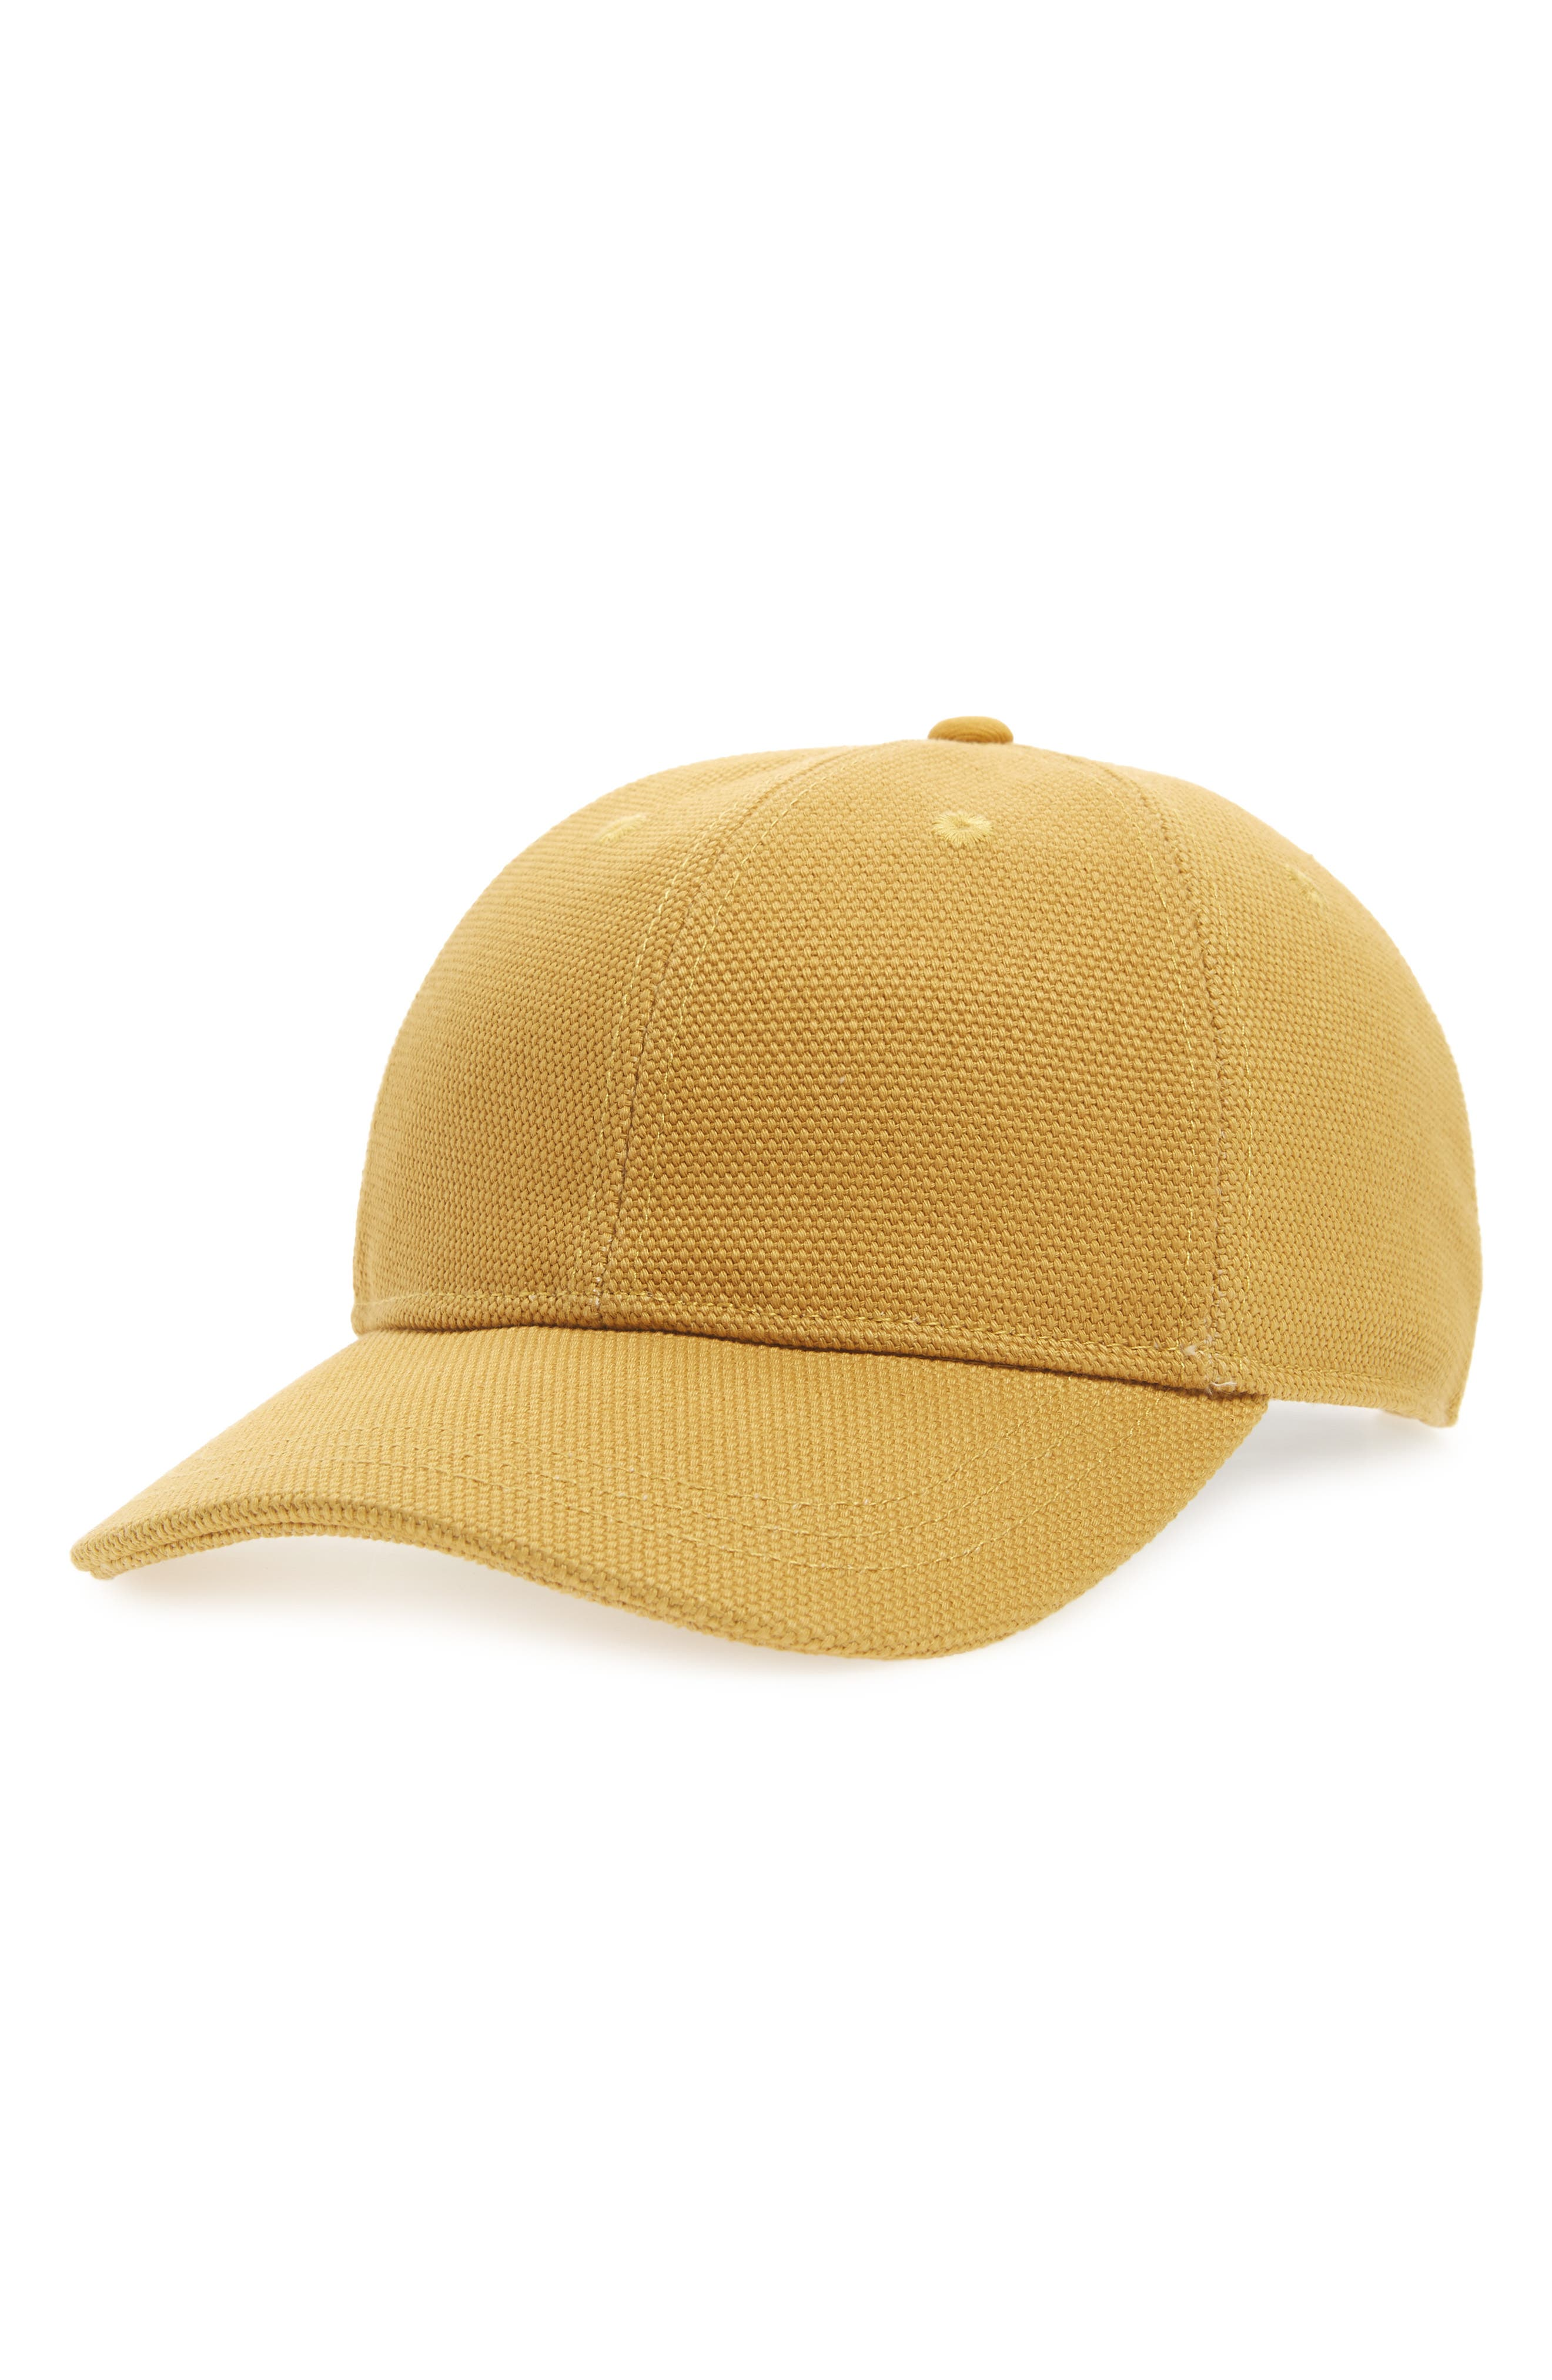 Canvas Baseball Cap,                             Main thumbnail 1, color,                             250